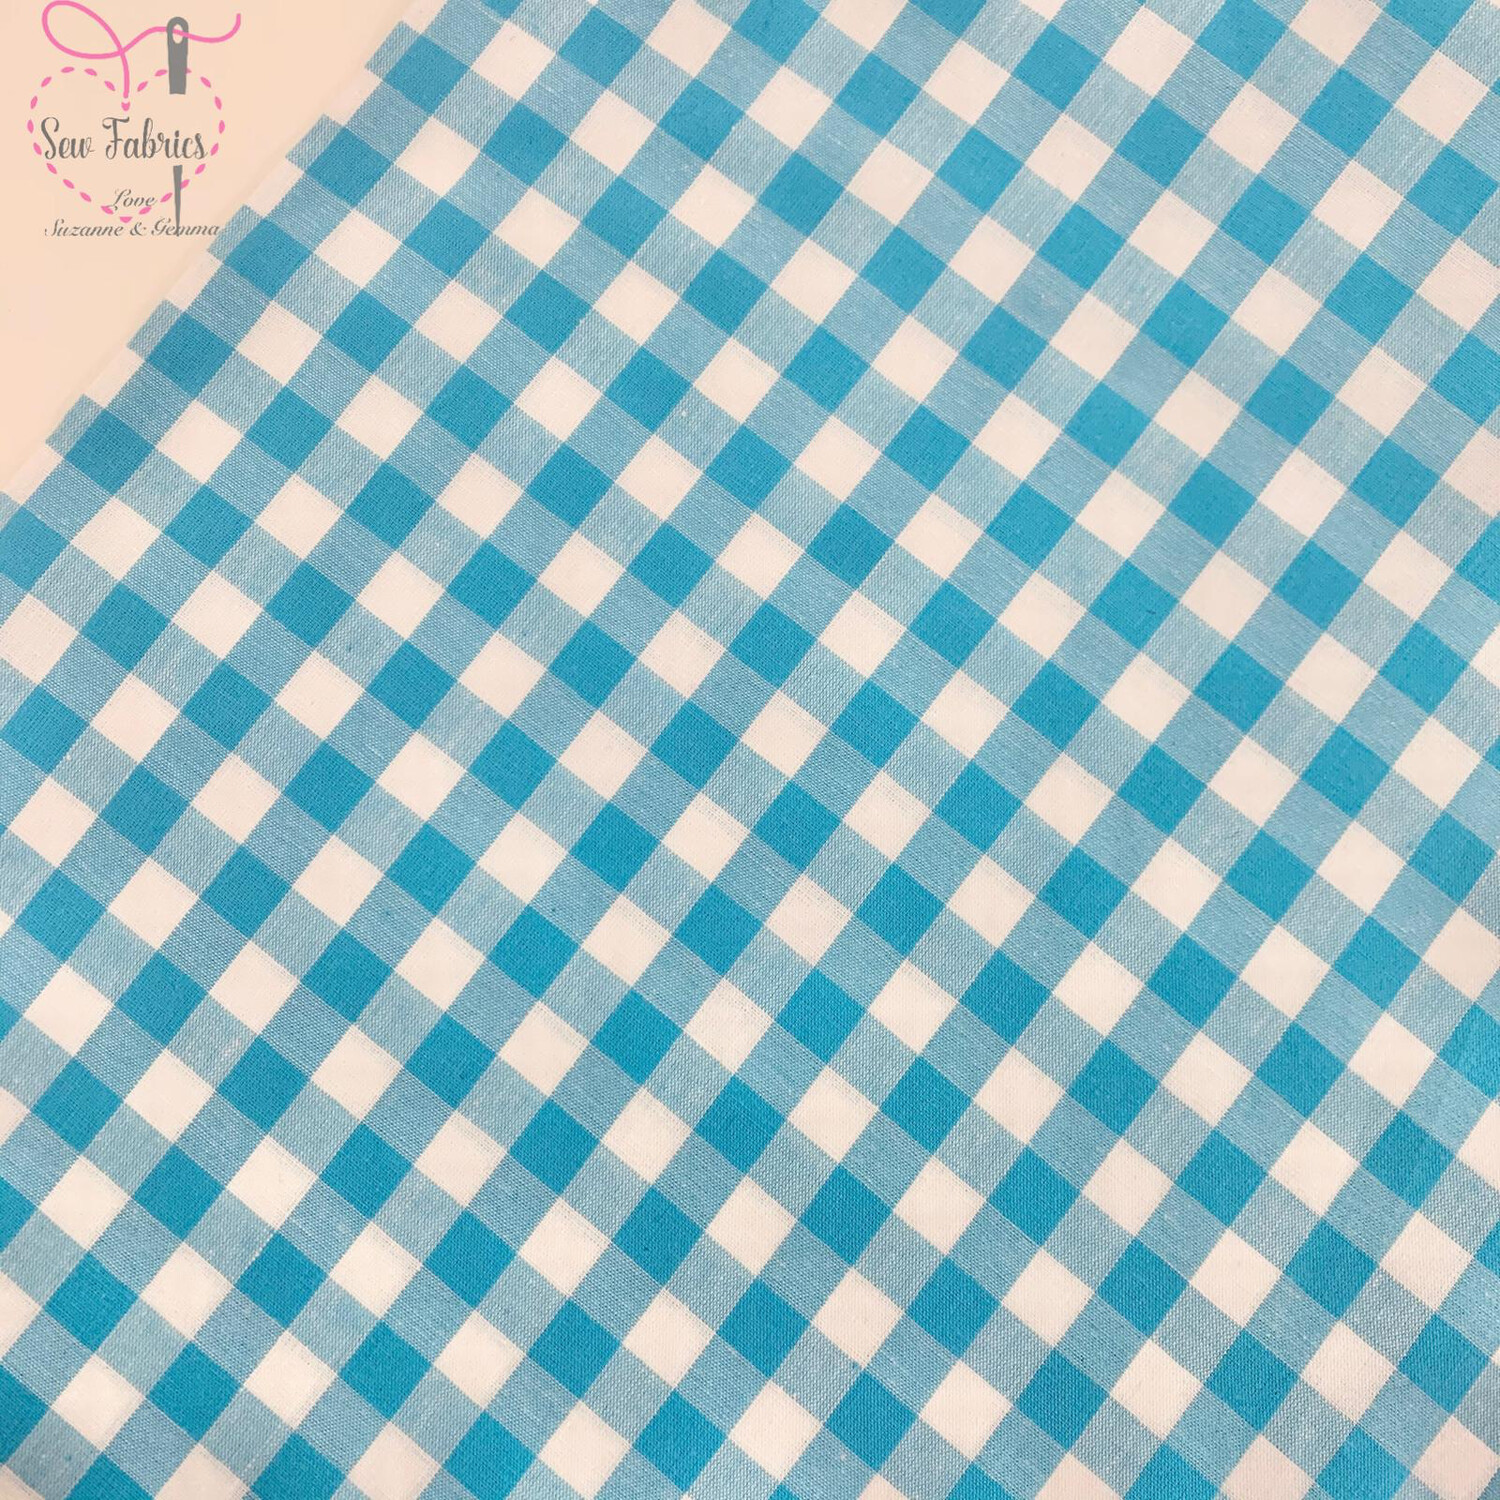 "John Louden Turquoise Blue Gingham 1/3"" 100% Yarn Dyed Cotton Check Fabric"